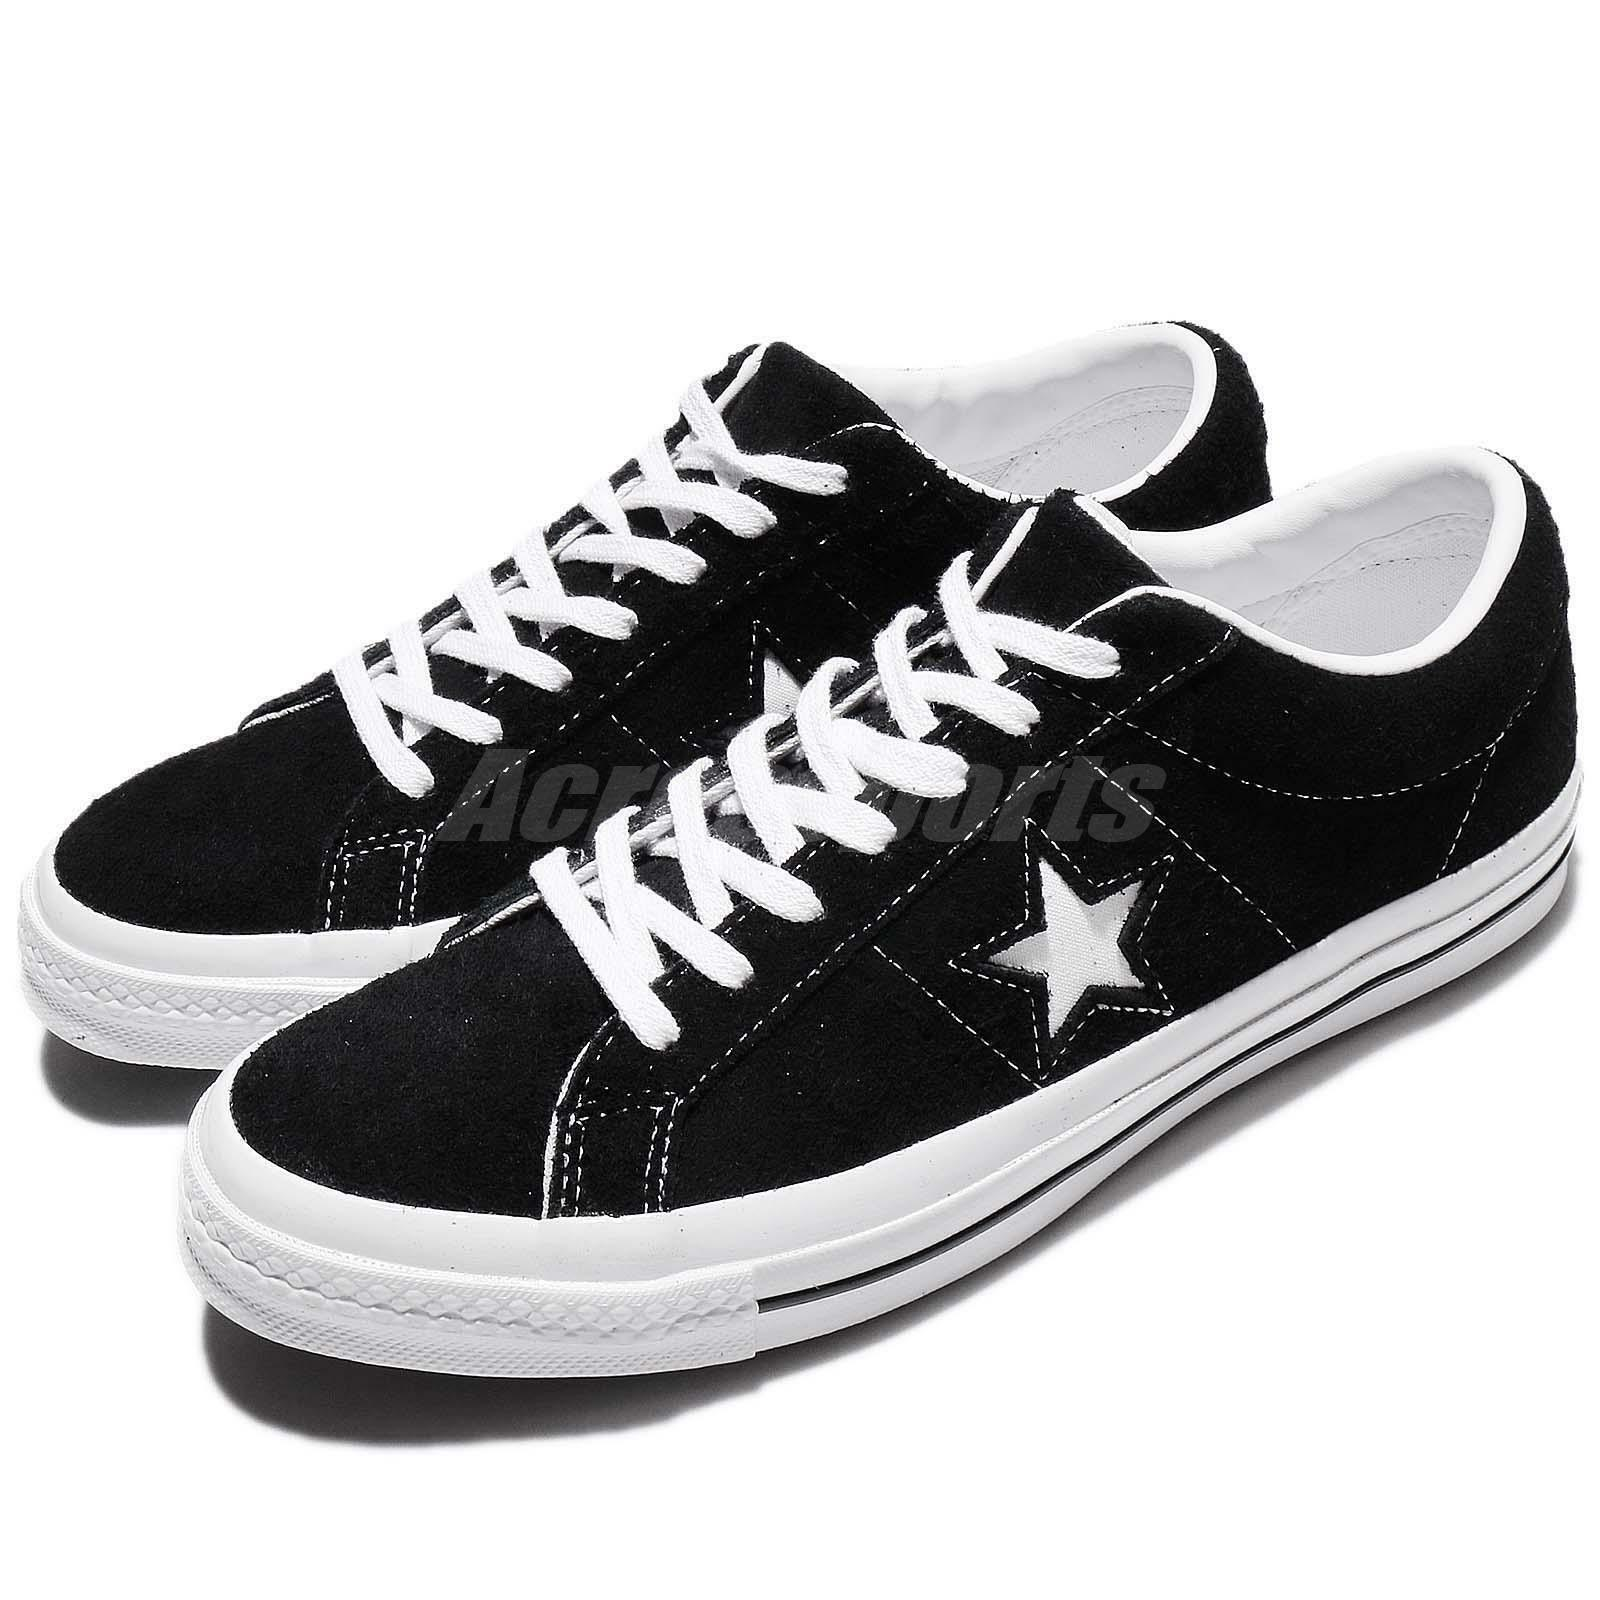 Converse One Star Ox Black White Suede